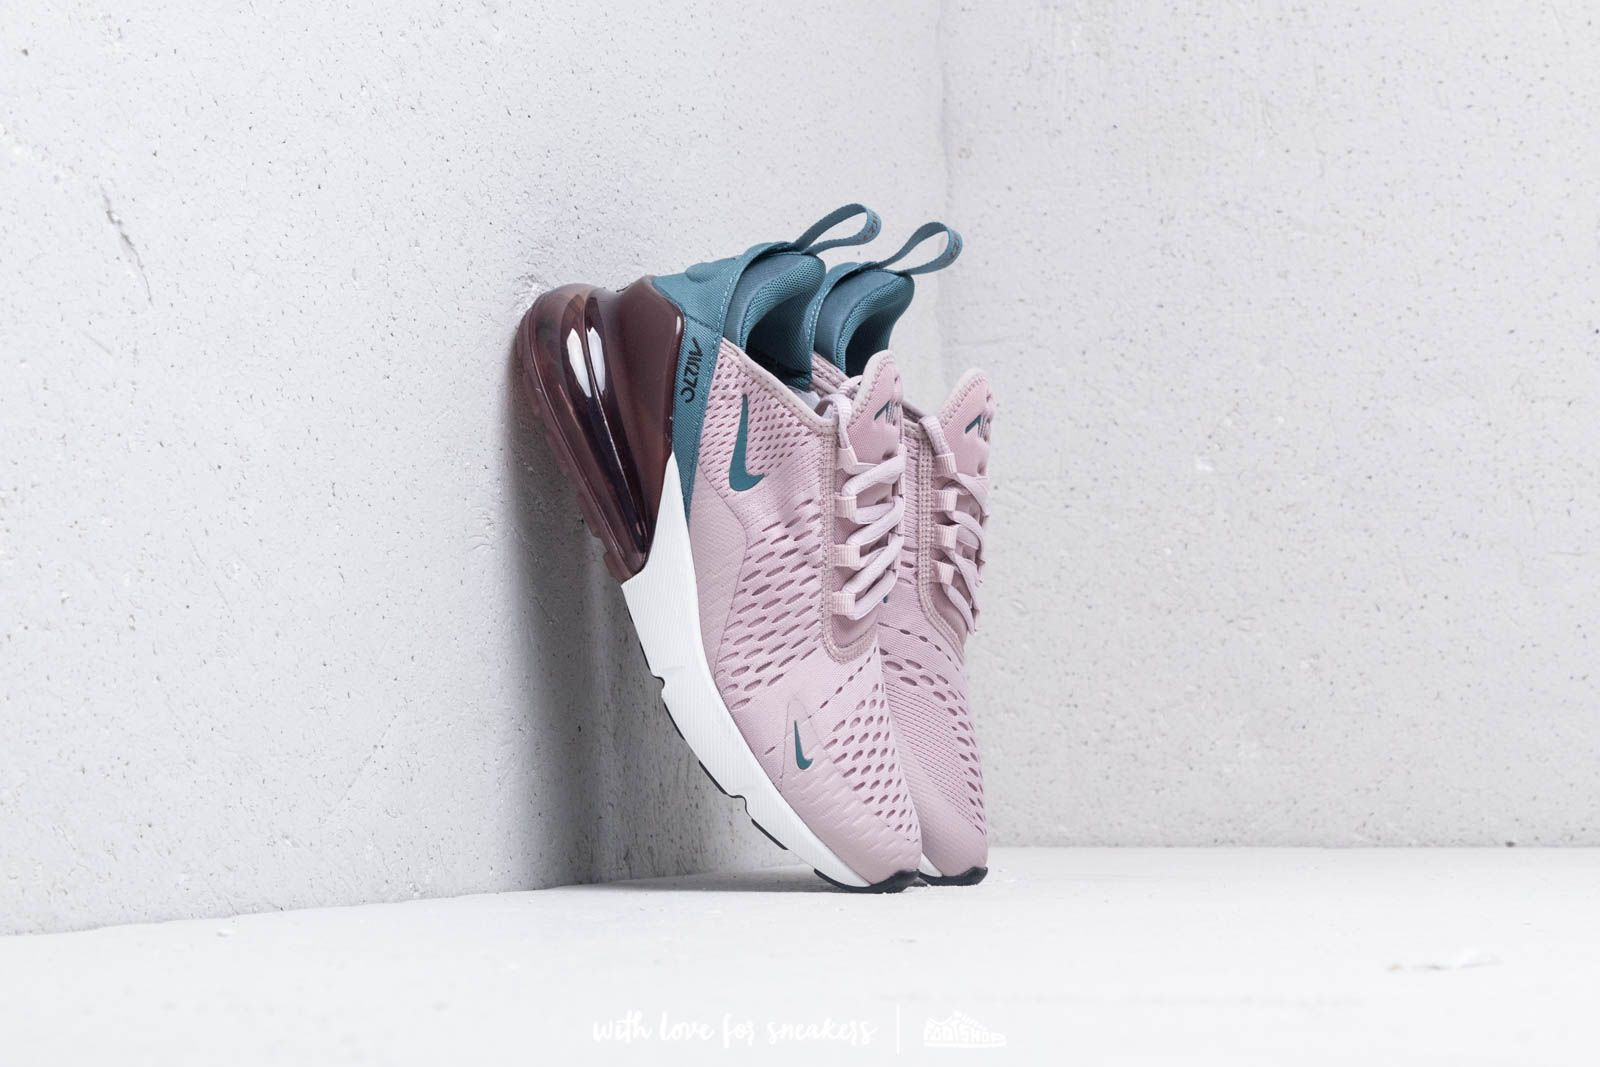 Nike W Air Max 270 Particle Rose/ Celestial Teal